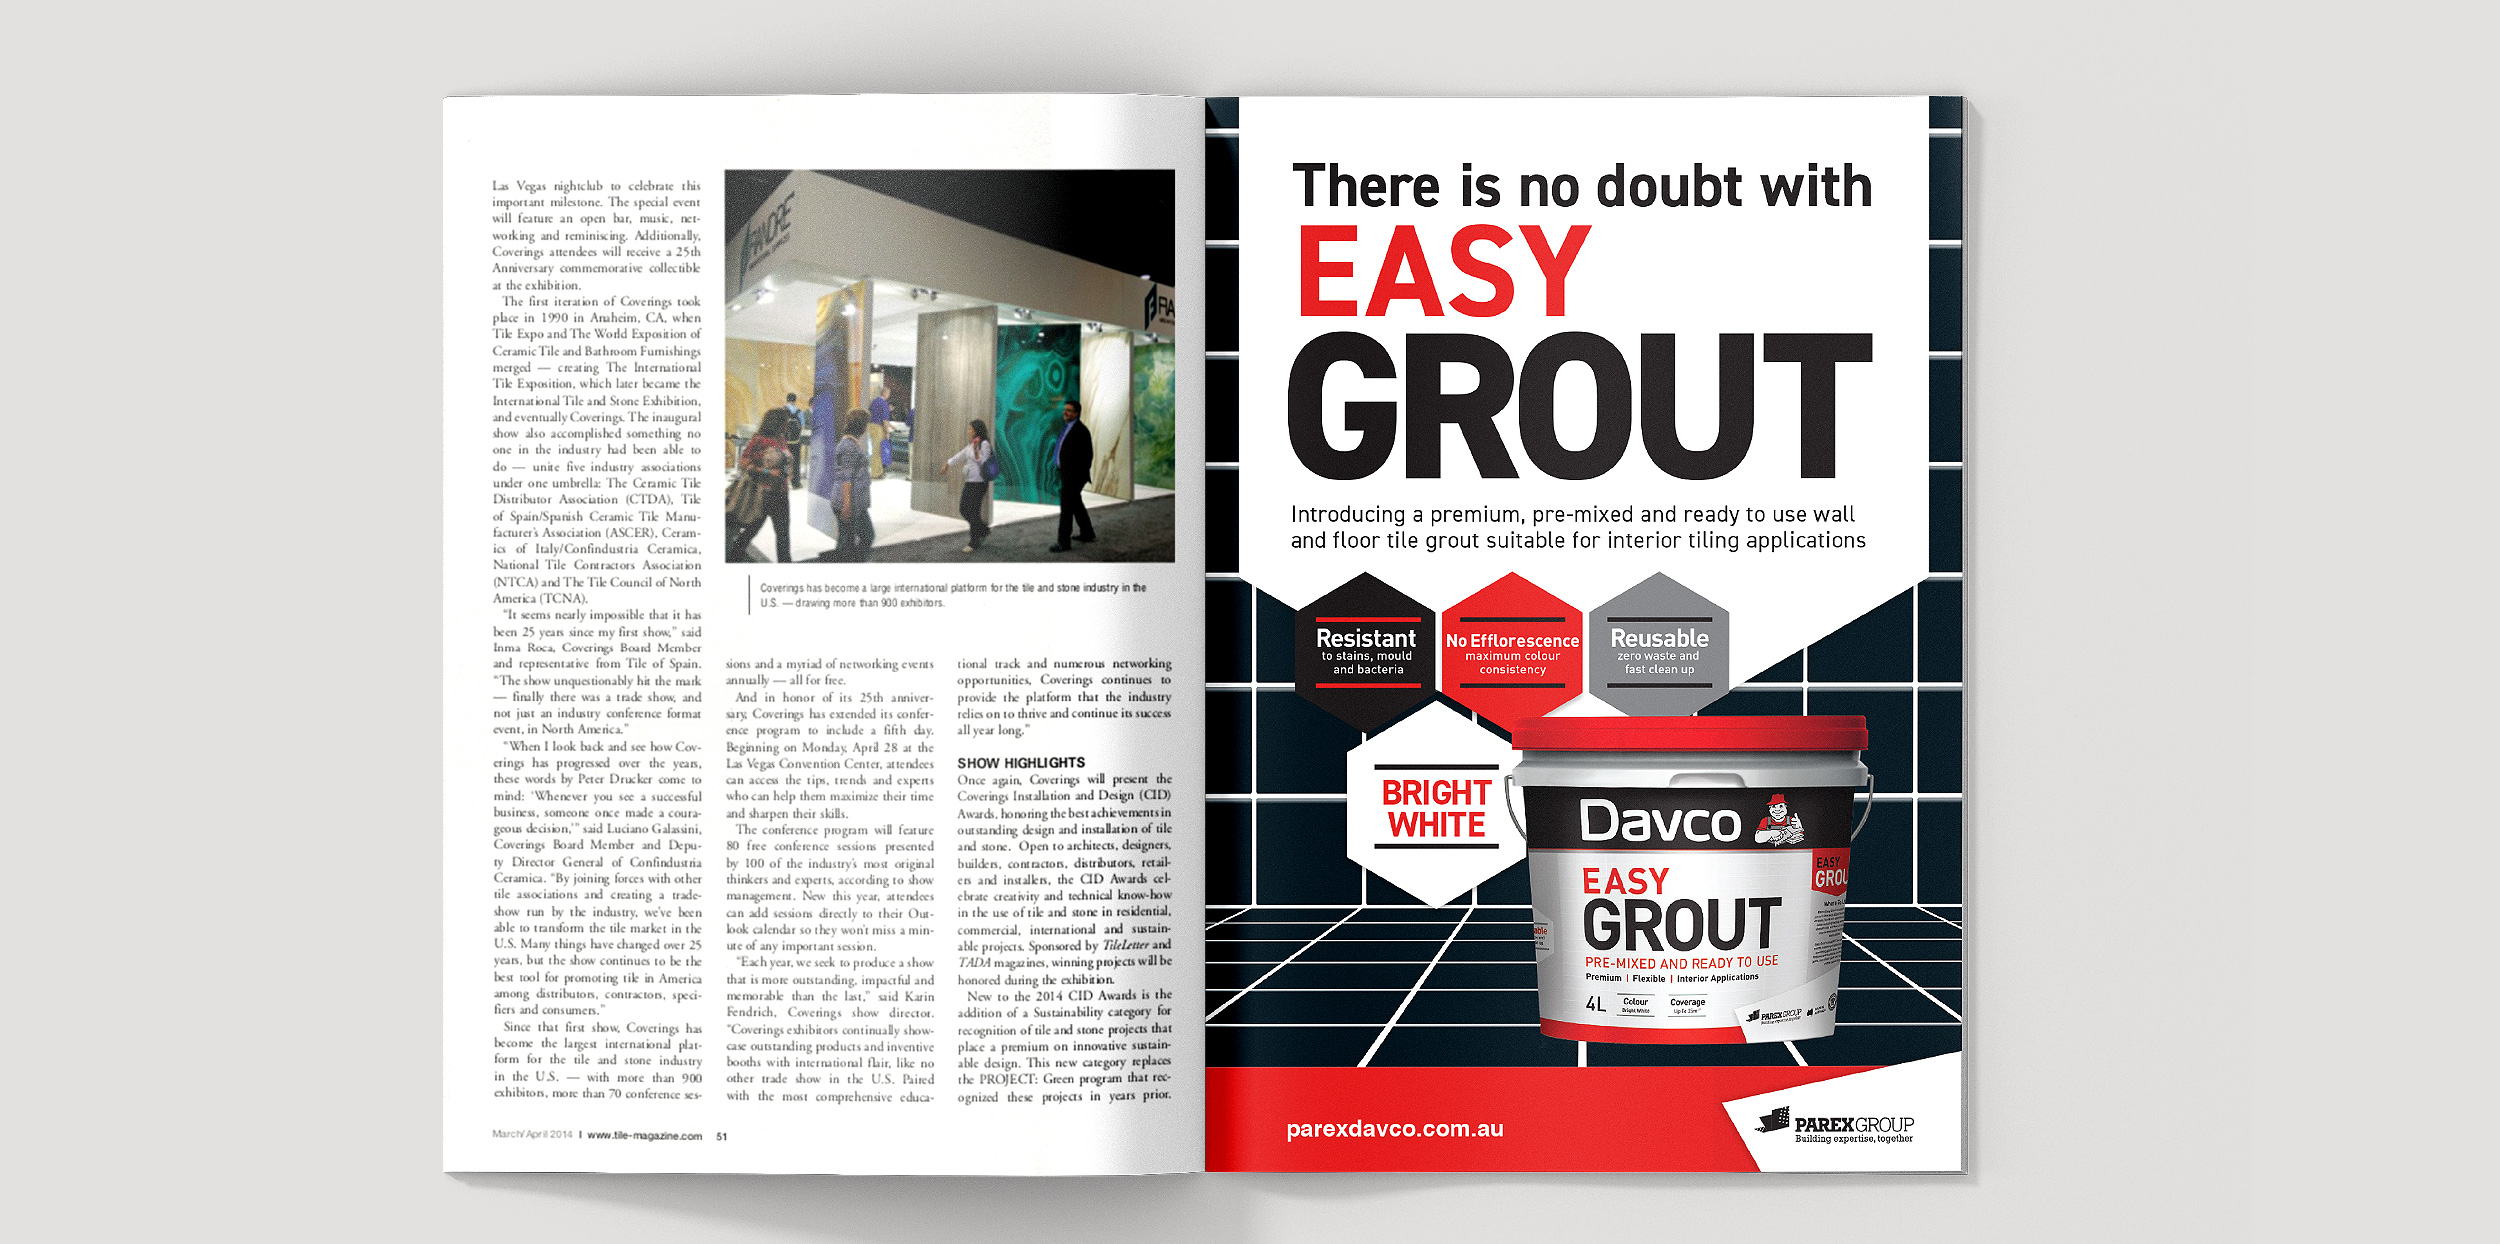 Handle-Branding-ParexGroup-Davco-Easy-Grout_07.jpg